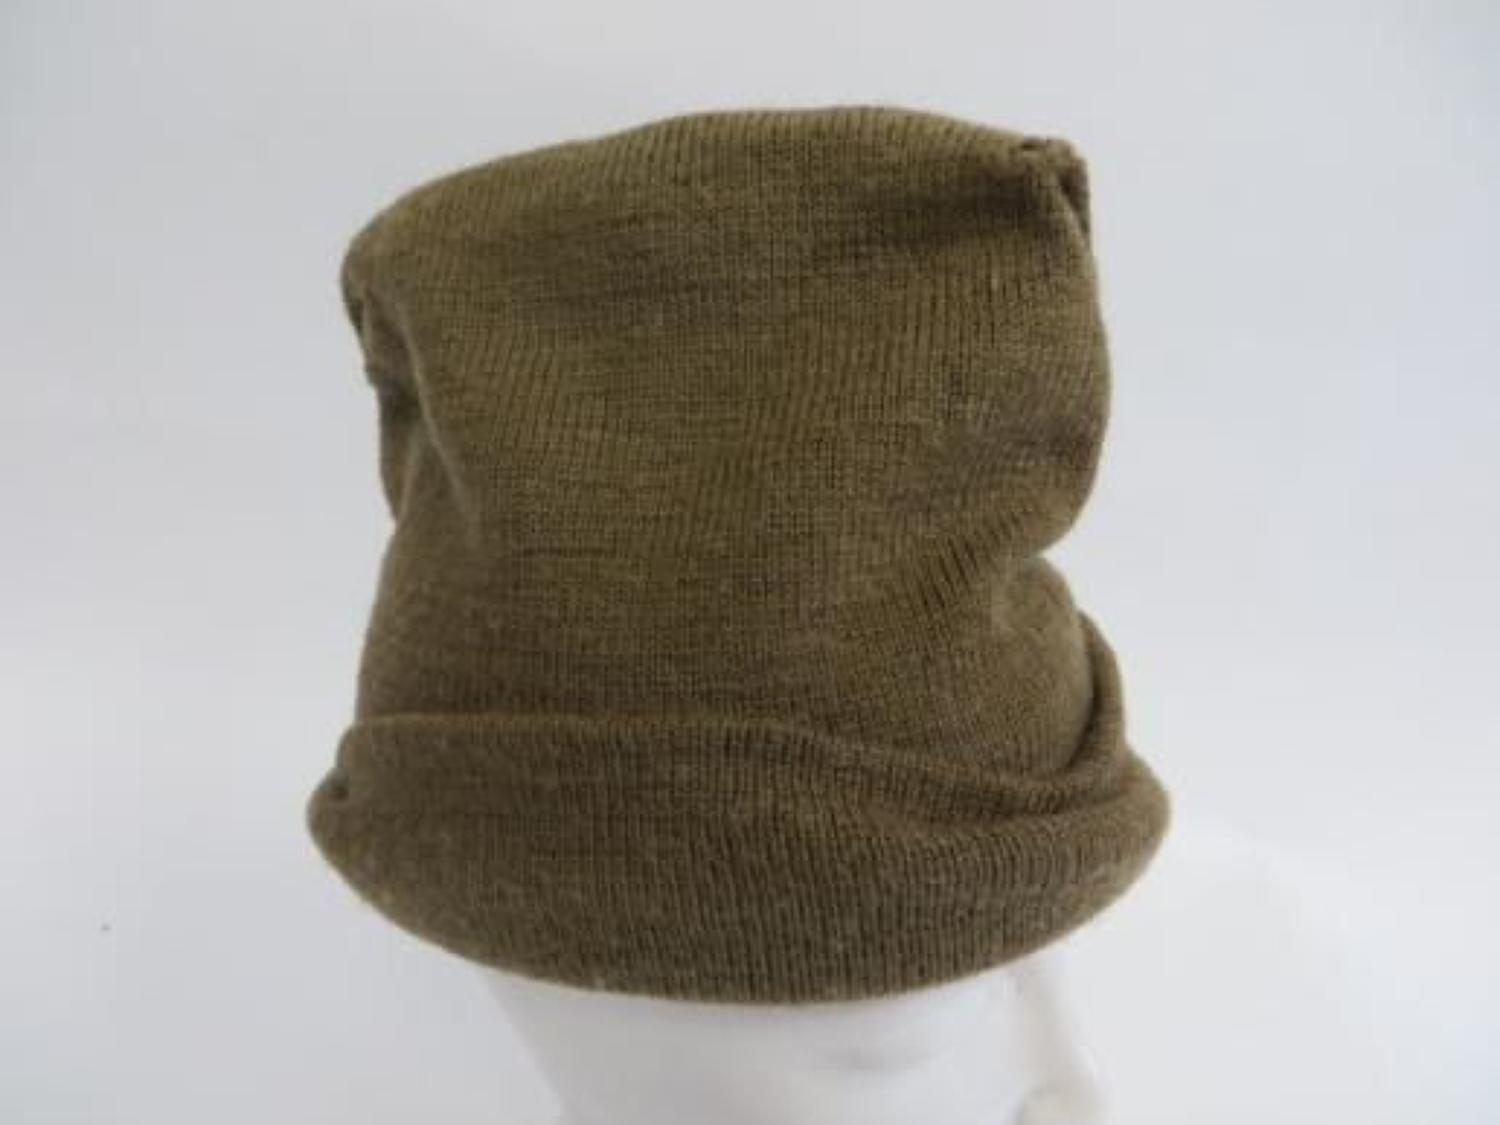 WW 2 British Army / Commando Woollen Cap